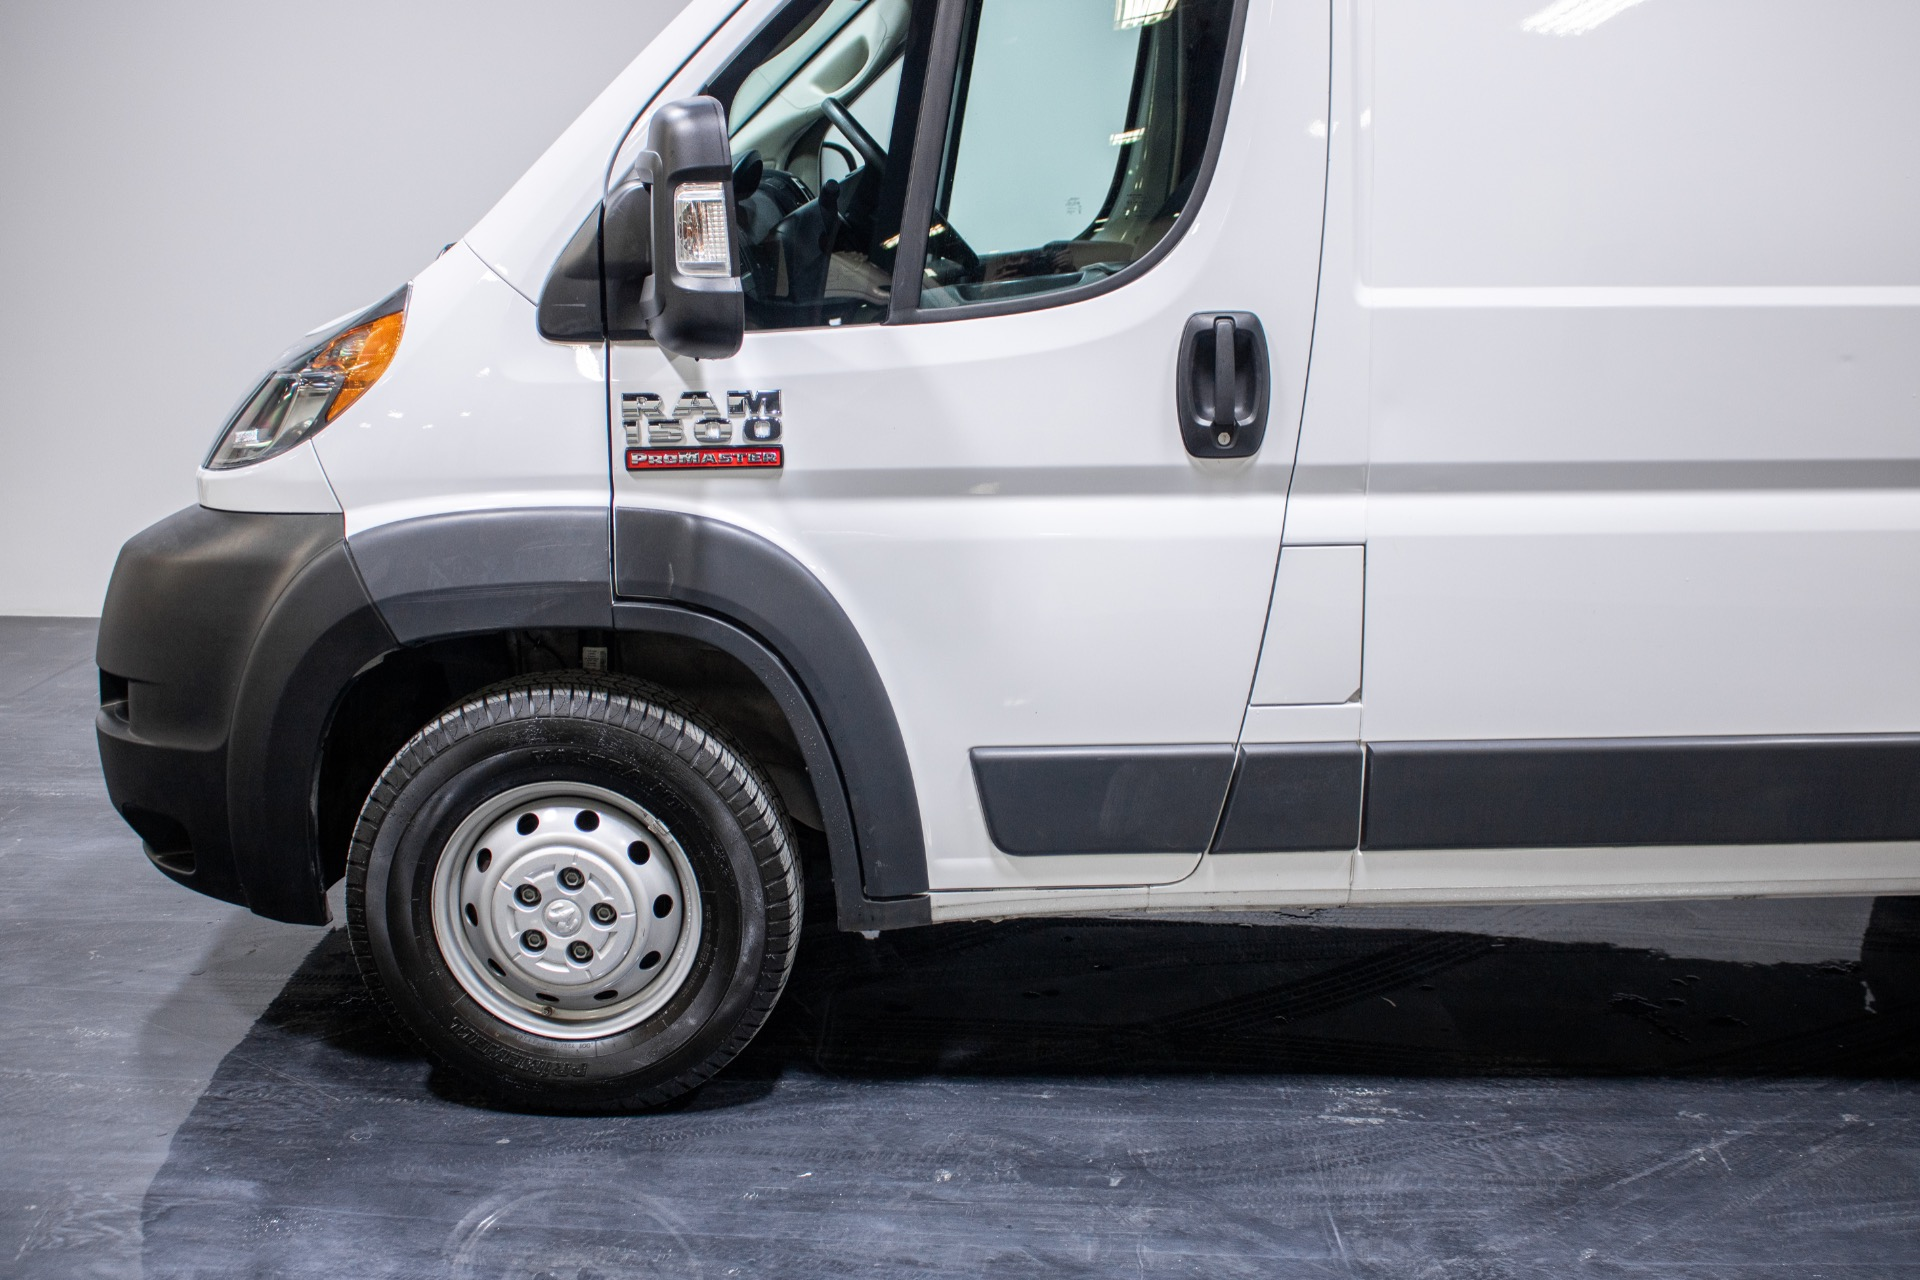 Used 2018 Ram ProMaster Cargo Van 1500 High Roof Van 3D for sale Sold at Perfect Auto Collection in Akron OH 44310 4